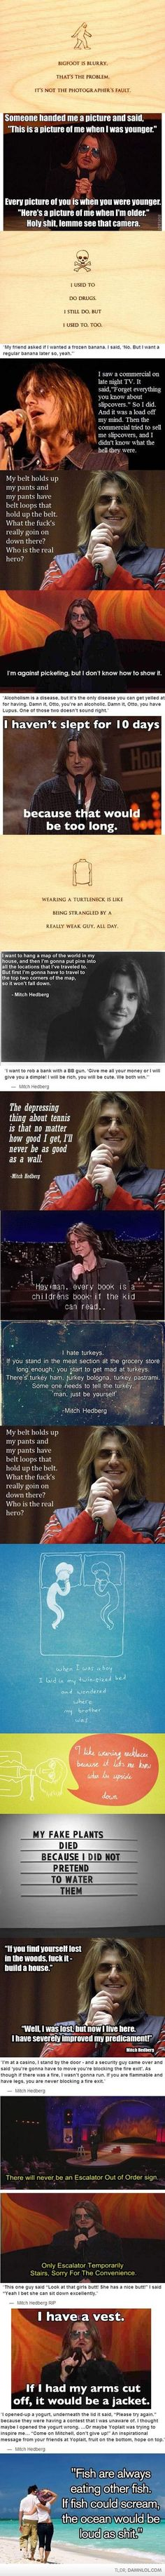 Awesome Mitch Hedberg Quotes...I don't know who this guy is but he is funny.